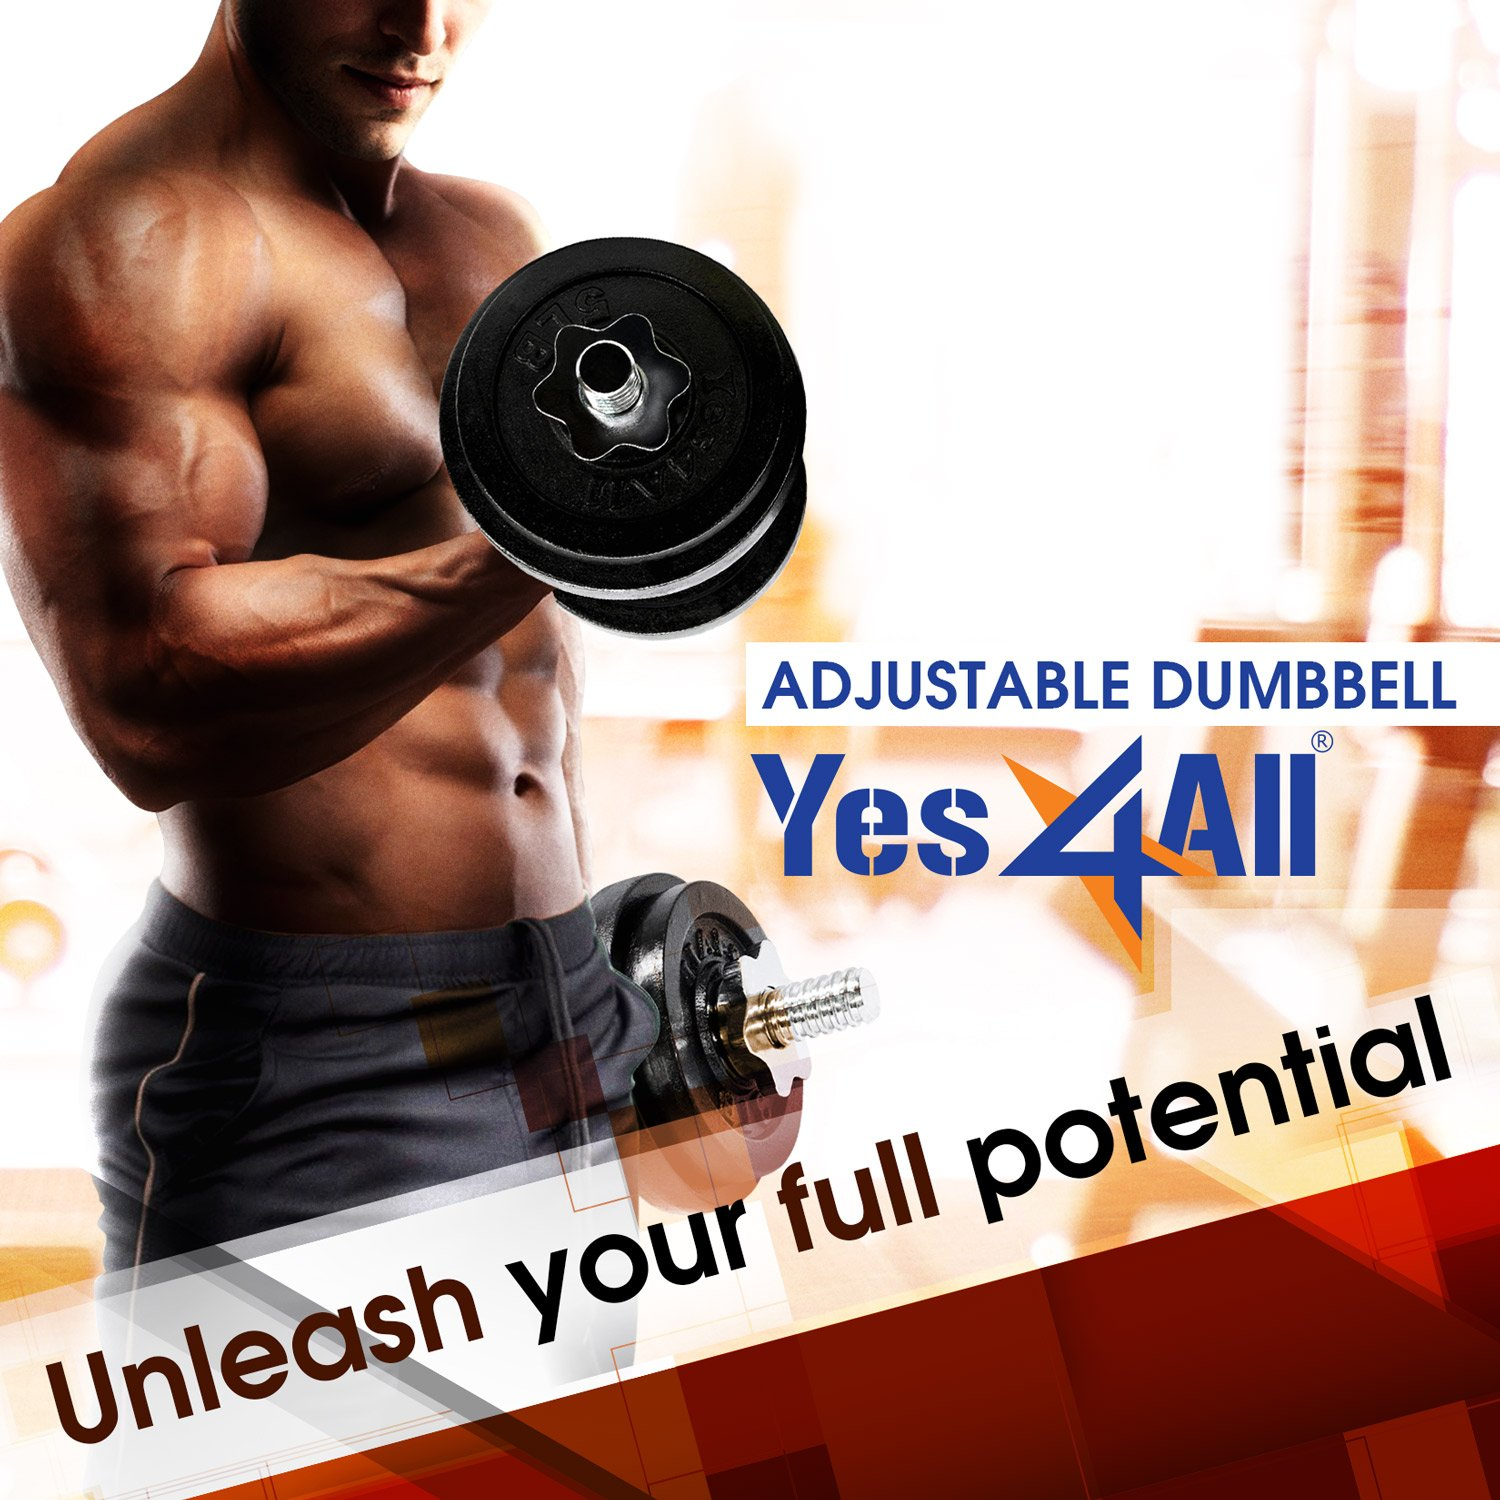 Yes4All Adjustable Dumbbell 40.02 lbs by Yes4All (Image #6)